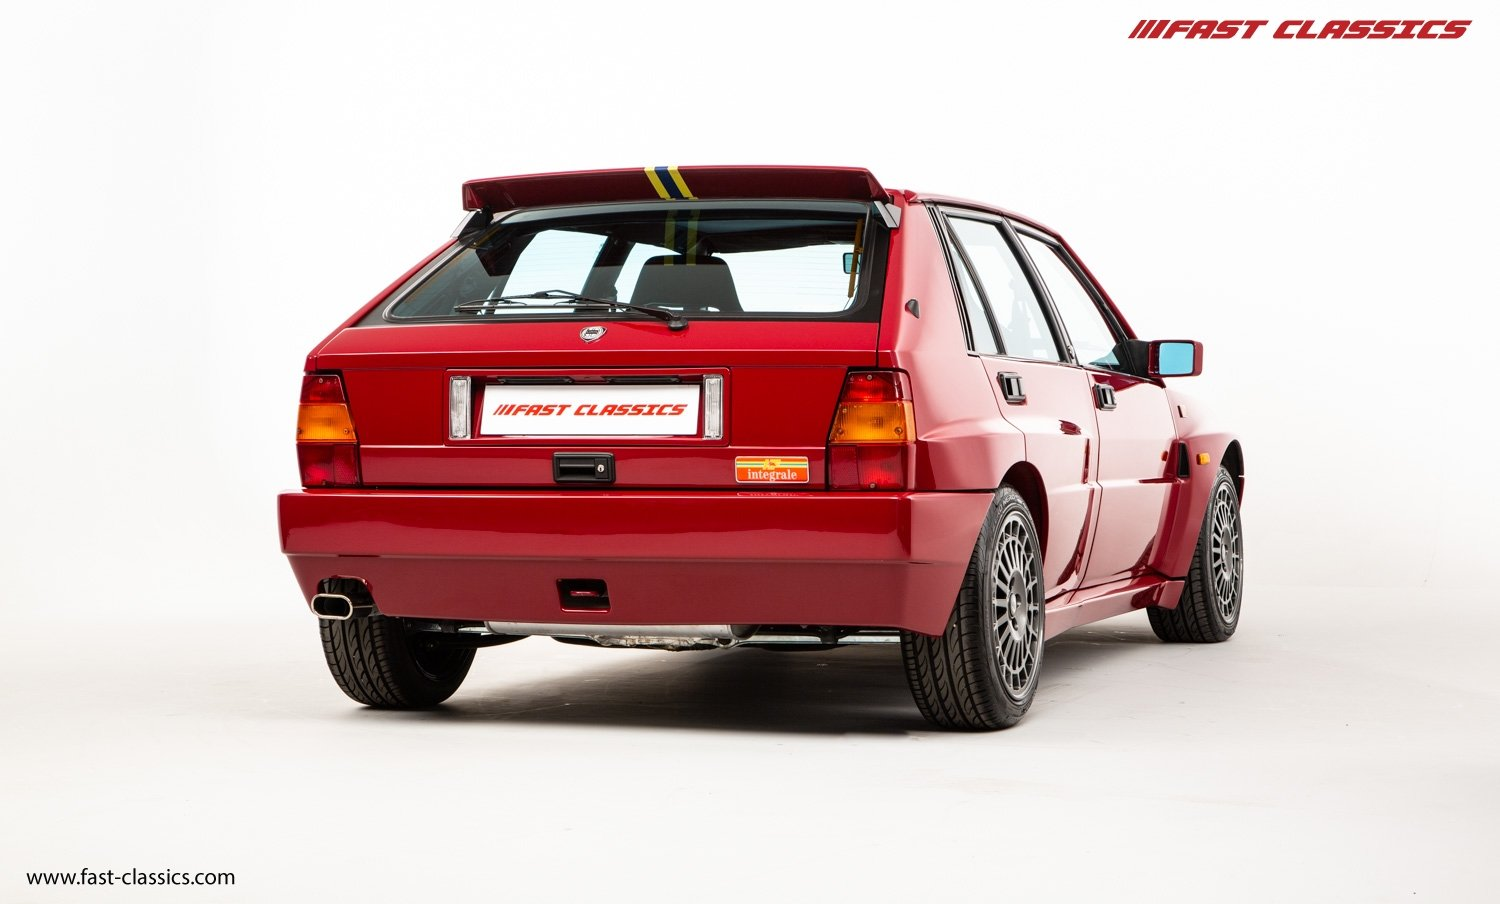 1995 LANCIA DELTA EDIZIONE FINALE // 1 OF 250 // 19K MILES  For Sale (picture 10 of 24)